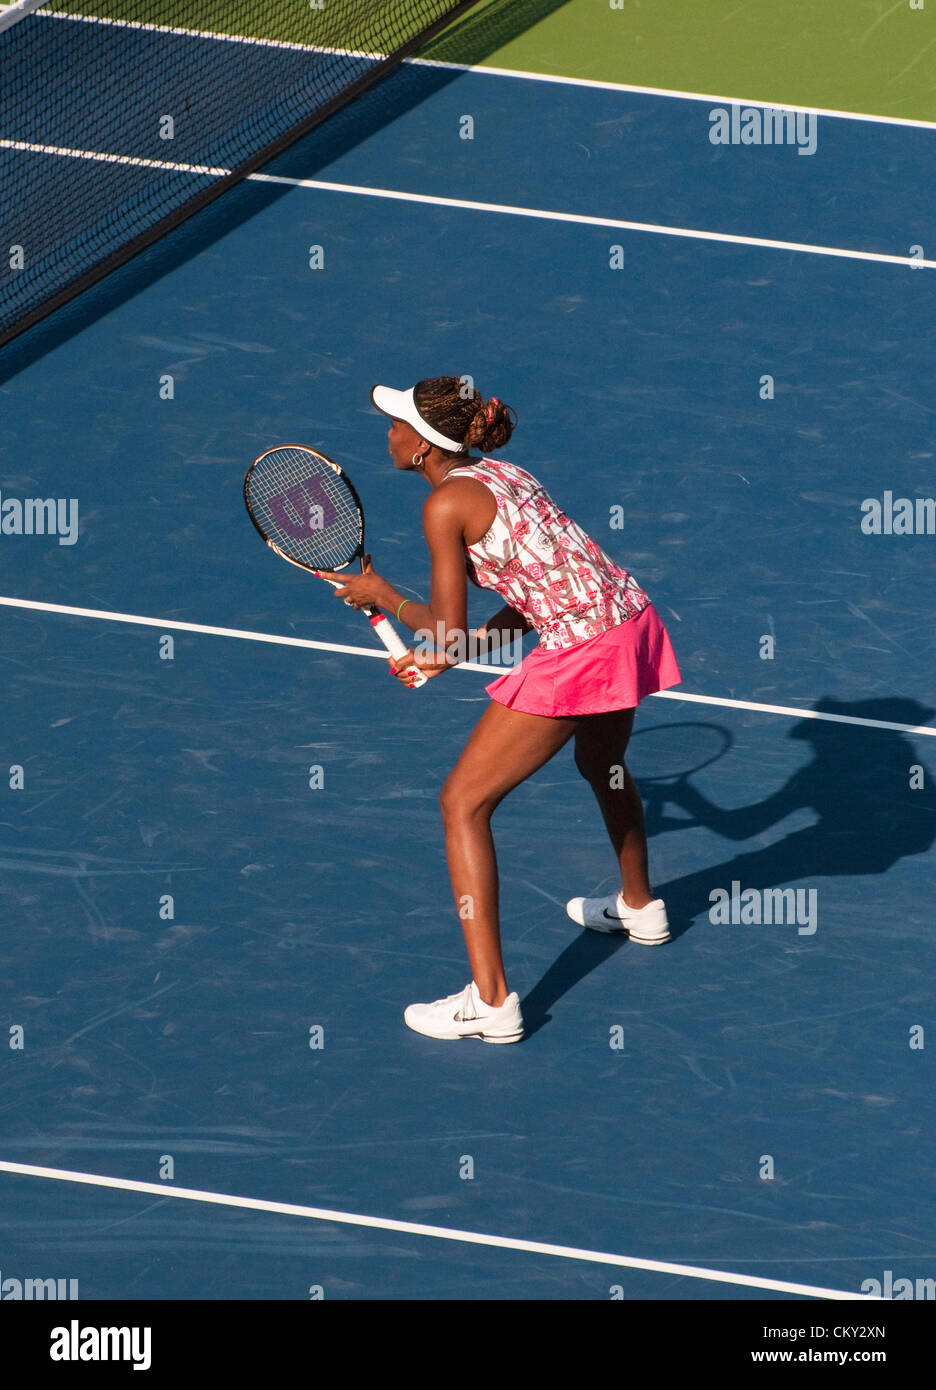 Venus Williams of the USA during the women's doubles second round match on Day Five of the 2012 US Open on August - Stock Image